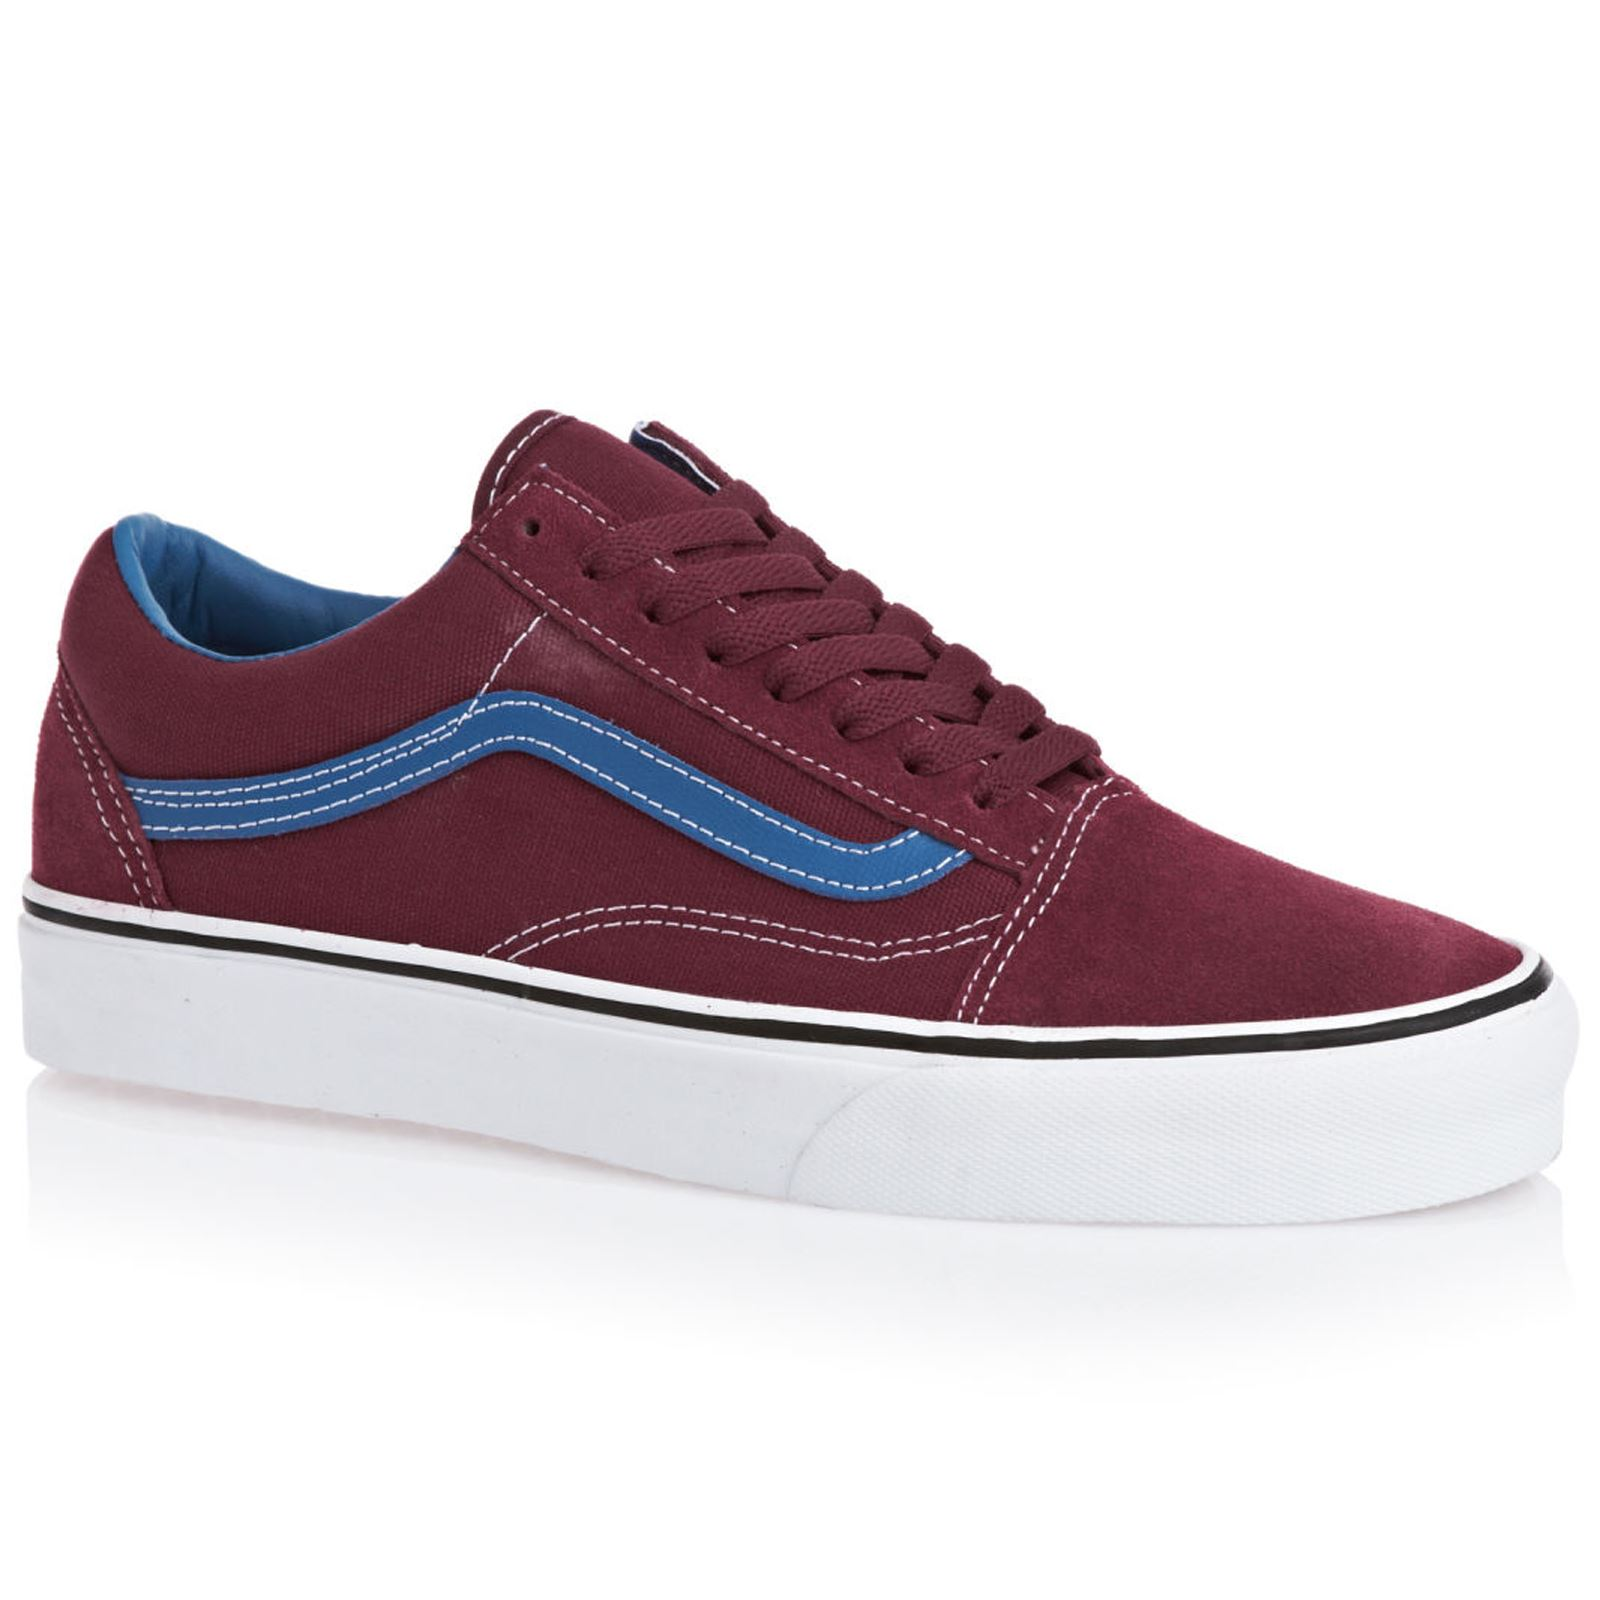 Vans Old Skool Burgundy Mens Trainers - VVOKC5P | eBay